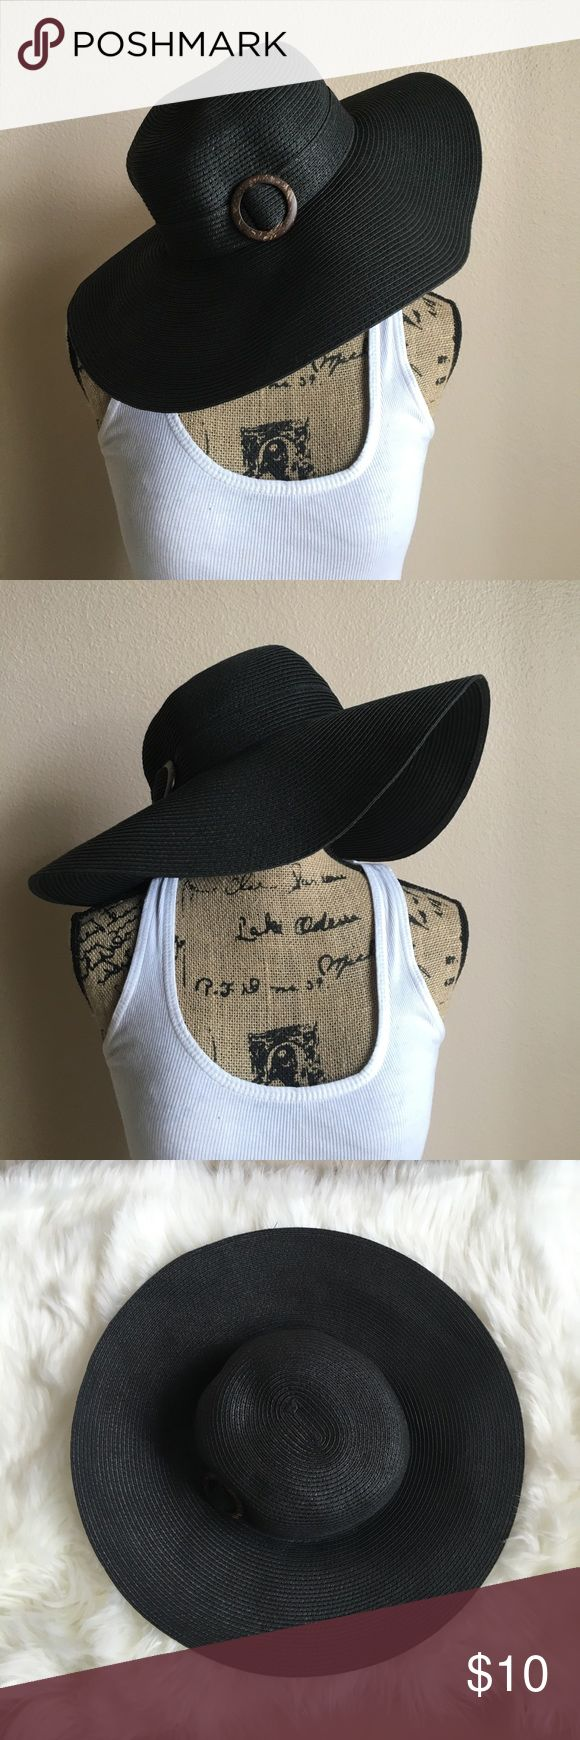 👉NWOT👈 Black Floppy Hat 👉NWOT👈 Black floppy hat is perfect for your summer vacation! Has a side buckle. In excellent condition. 👍 Accessories Hats